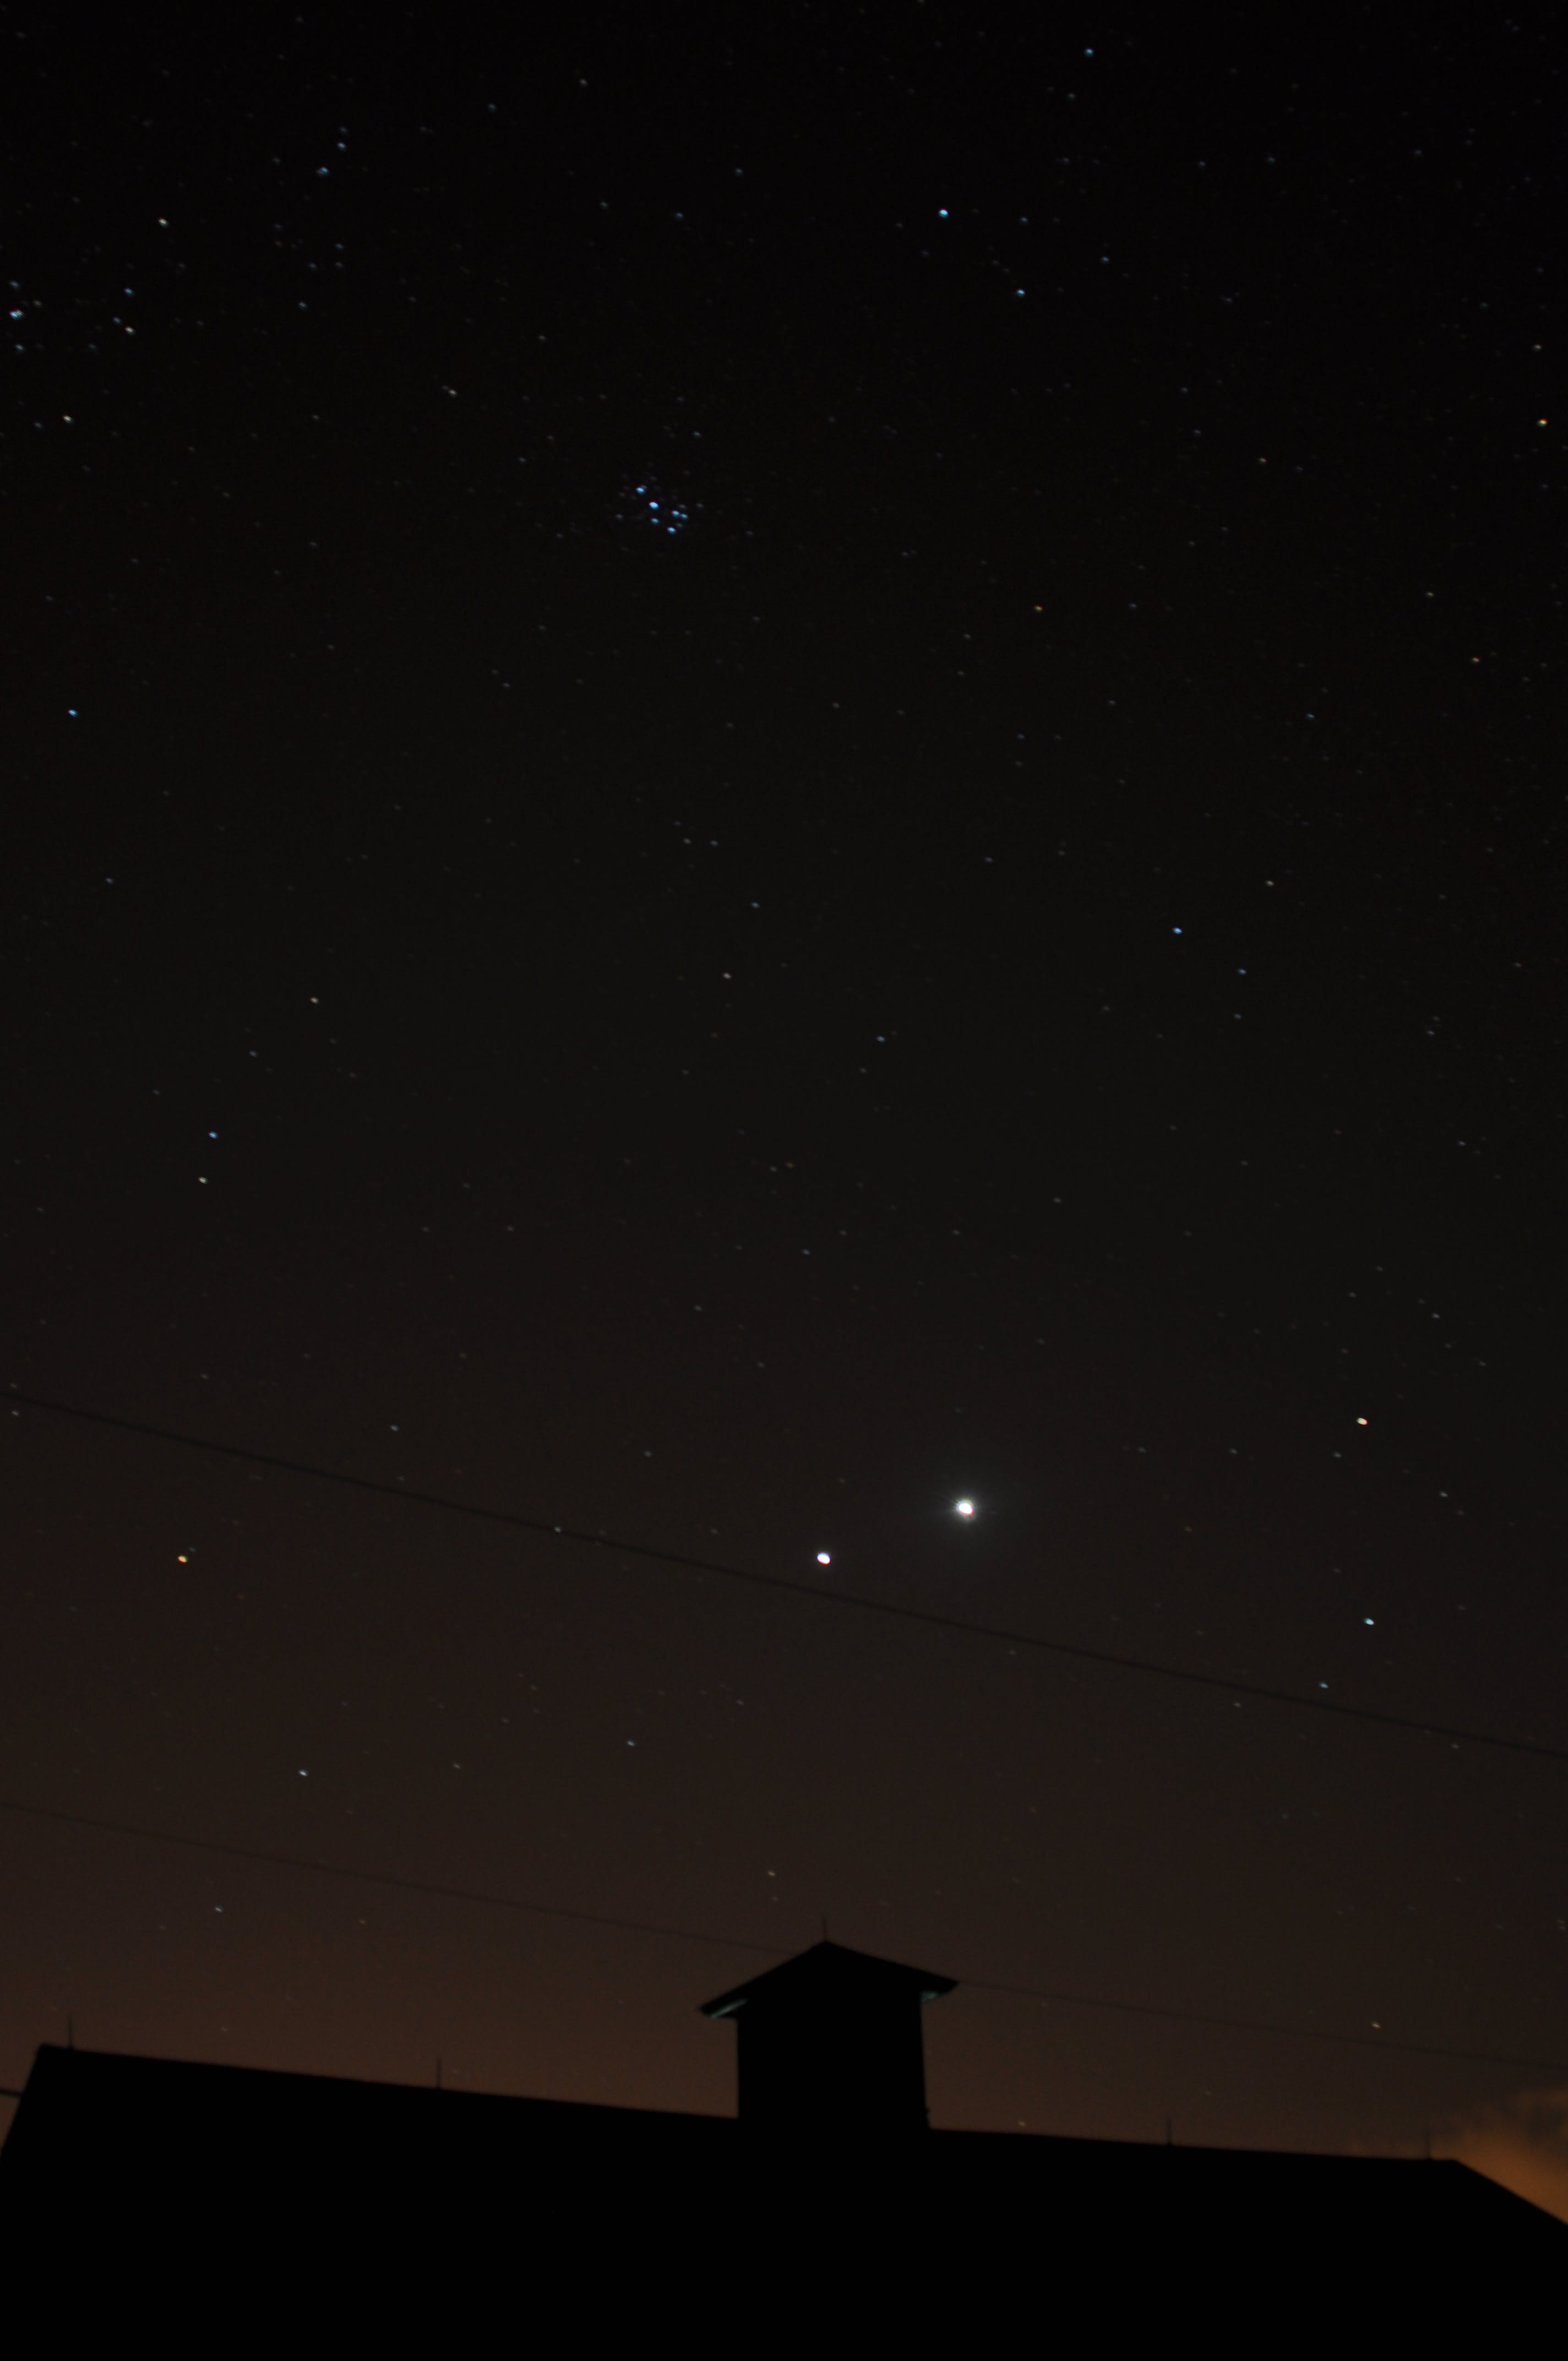 A picture of the night sky, showing Venus and Jupiter in conjunction, and the Little Dipper at the top.